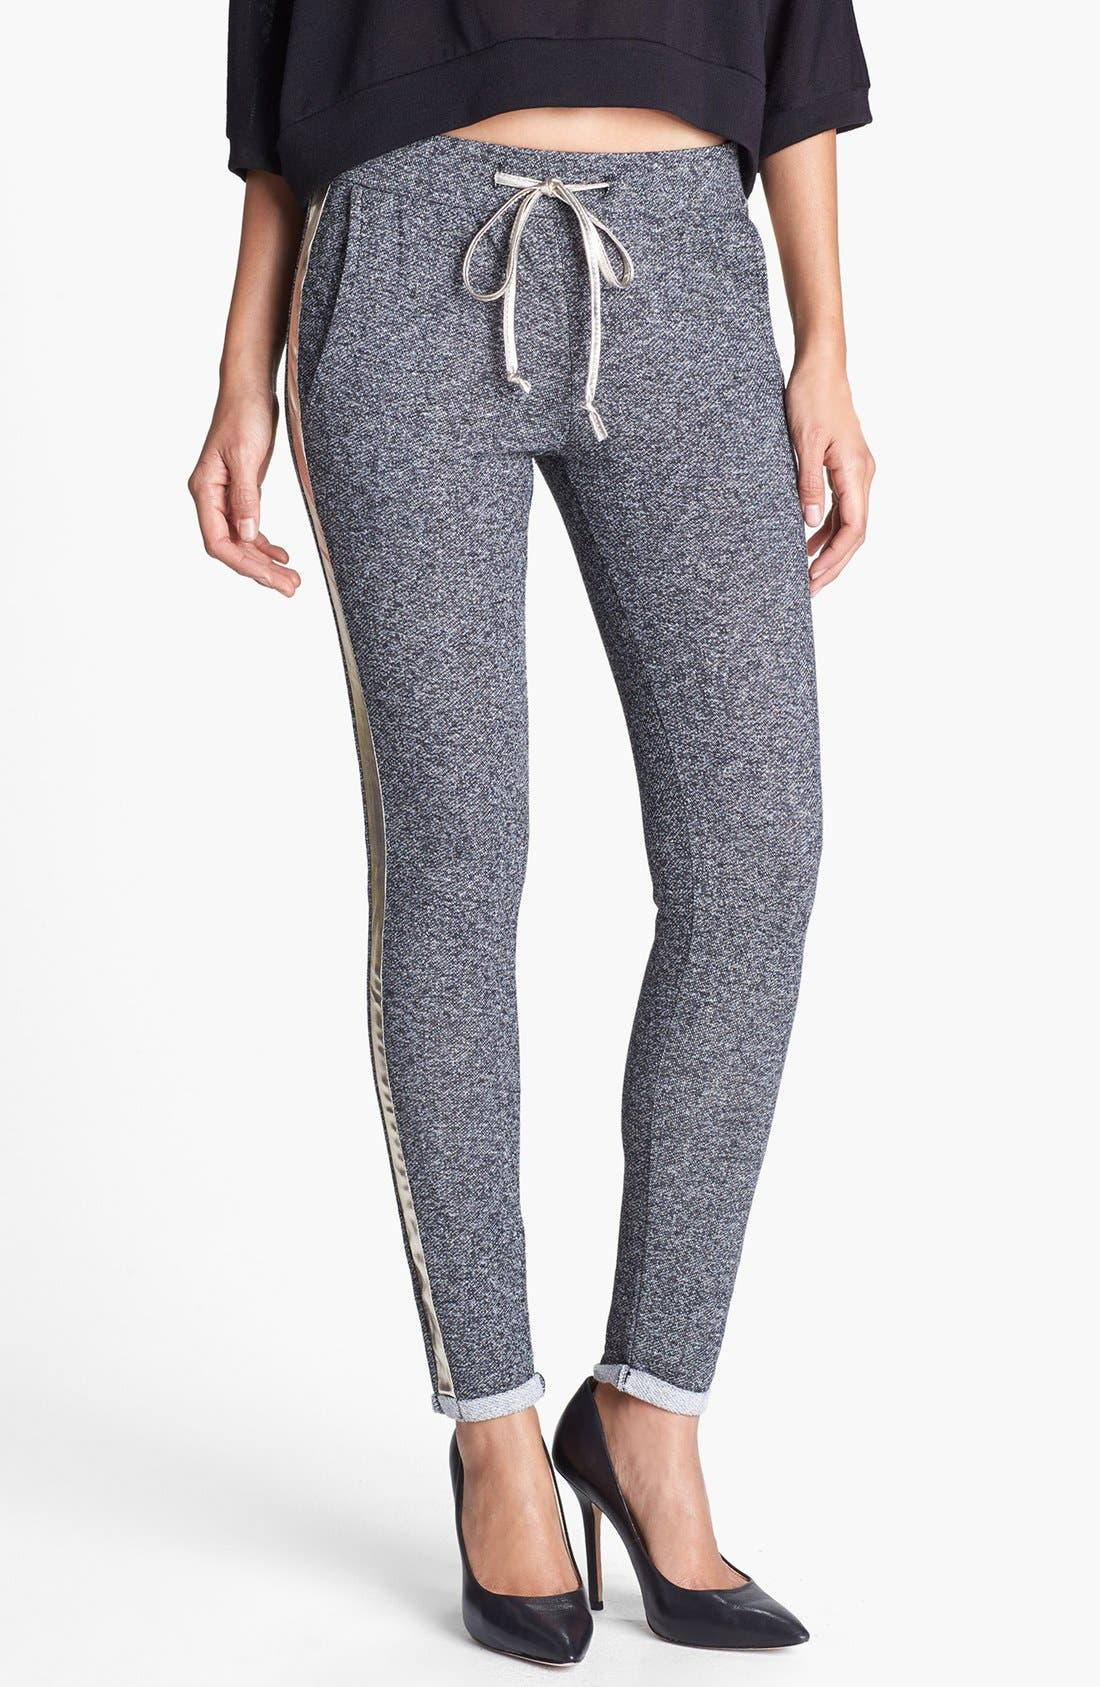 Alternate Image 1 Selected - Faubourg du Temple Faux Leather Trim Tapered Track Pants